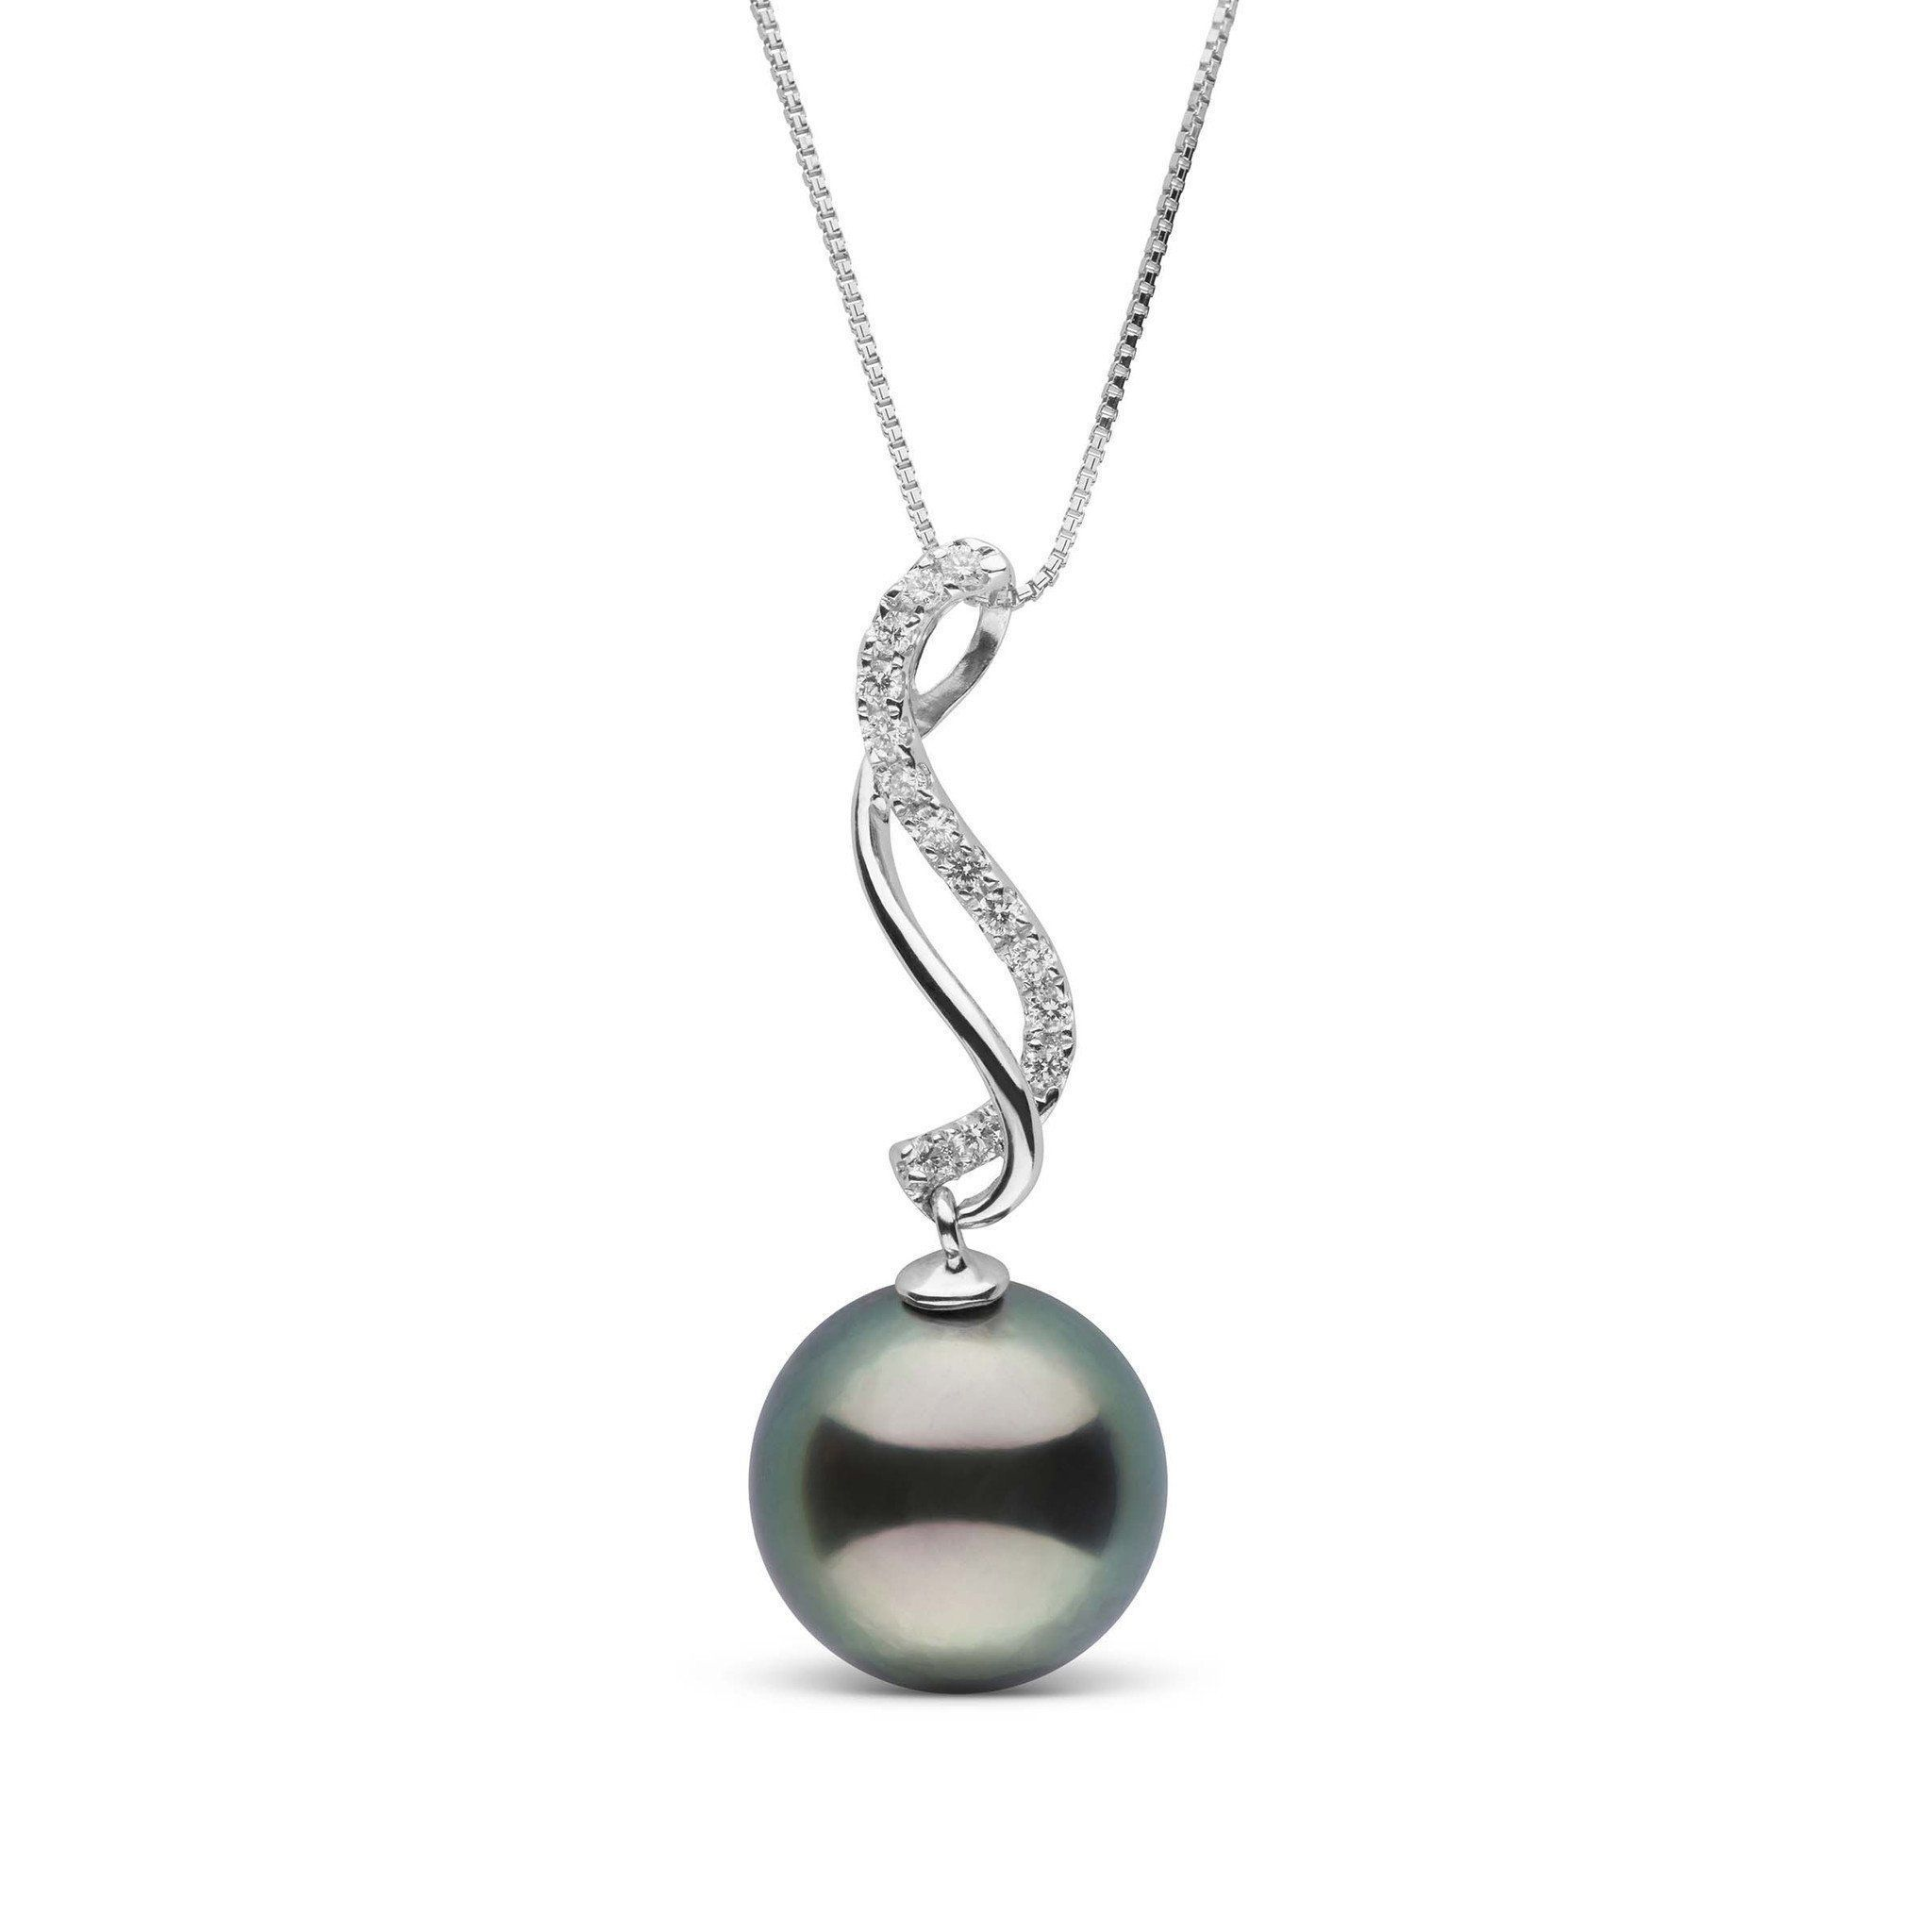 Infinity Collection 9.0-10.0 mm Tahitian Pearl & Diamond Pendant